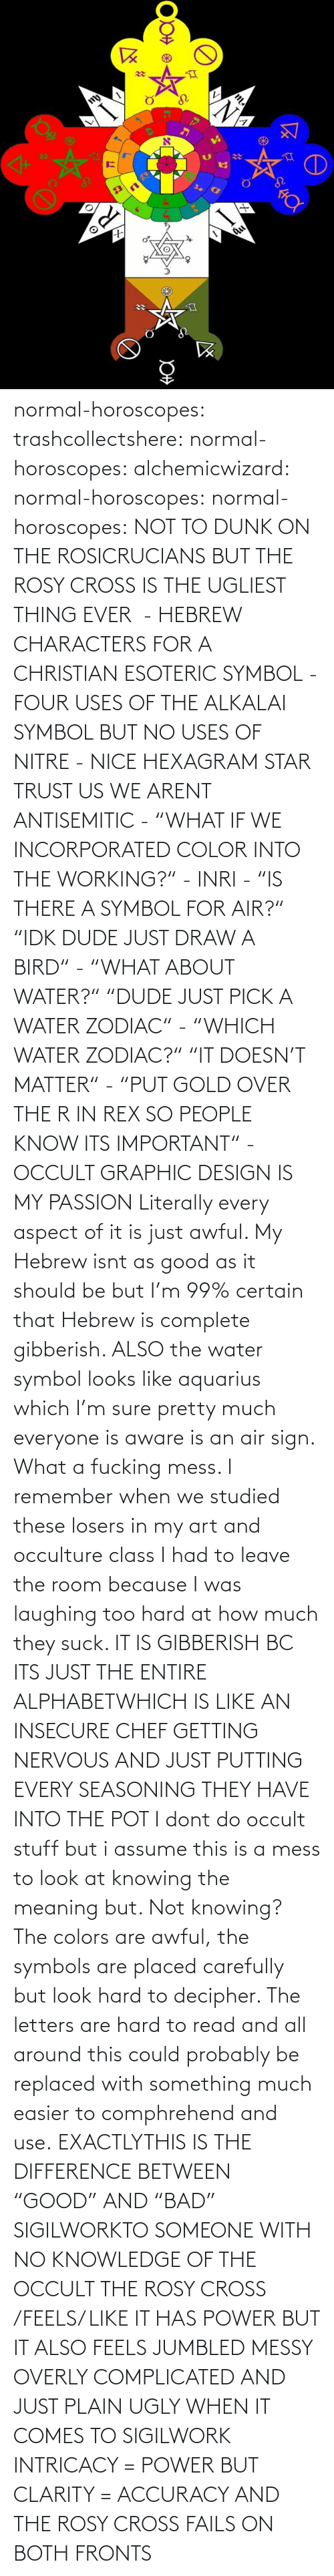 "carefully: normal-horoscopes:  trashcollectshere: normal-horoscopes:   alchemicwizard:  normal-horoscopes:  normal-horoscopes: NOT TO DUNK ON THE ROSICRUCIANS BUT THE ROSY CROSS IS THE UGLIEST THING EVER  - HEBREW CHARACTERS FOR A CHRISTIAN ESOTERIC SYMBOL - FOUR USES OF THE ALKALAI SYMBOL BUT NO USES OF NITRE - NICE HEXAGRAM STAR TRUST US WE ARENT ANTISEMITIC - ""WHAT IF WE INCORPORATED COLOR INTO THE WORKING?"" - INRI - ""IS THERE A SYMBOL FOR AIR?"" ""IDK DUDE JUST DRAW A BIRD"" - ""WHAT ABOUT WATER?"" ""DUDE JUST PICK A WATER ZODIAC"" - ""WHICH WATER ZODIAC?"" ""IT DOESN'T MATTER"" - ""PUT GOLD OVER THE R IN REX SO PEOPLE KNOW ITS IMPORTANT"" - OCCULT GRAPHIC DESIGN IS MY PASSION  Literally every aspect of it is just awful. My Hebrew isnt as good as it should be but I'm 99% certain that Hebrew is complete gibberish.  ALSO the water symbol looks like aquarius which I'm sure pretty much everyone is aware is an air sign. What a fucking mess.  I remember when we studied these losers in my art and occulture class I had to leave the room because I was laughing too hard at how much they suck.   IT IS GIBBERISH BC ITS JUST THE ENTIRE ALPHABETWHICH IS LIKE AN INSECURE CHEF GETTING NERVOUS AND JUST PUTTING EVERY SEASONING THEY HAVE INTO THE POT     I dont do occult stuff but i assume this is a mess to look at knowing the meaning but. Not knowing? The colors are awful, the symbols are placed carefully but look hard to decipher. The letters are hard to read and all around this could probably be replaced with something much easier to comphrehend and use.  EXACTLYTHIS IS THE DIFFERENCE BETWEEN ""GOOD"" AND ""BAD"" SIGILWORKTO SOMEONE WITH NO KNOWLEDGE OF THE OCCULT THE ROSY CROSS /FEELS/ LIKE IT HAS POWER BUT IT ALSO FEELS JUMBLED MESSY OVERLY COMPLICATED AND JUST PLAIN UGLY WHEN IT COMES TO SIGILWORK INTRICACY = POWER BUT CLARITY = ACCURACY AND THE ROSY CROSS FAILS ON BOTH FRONTS"